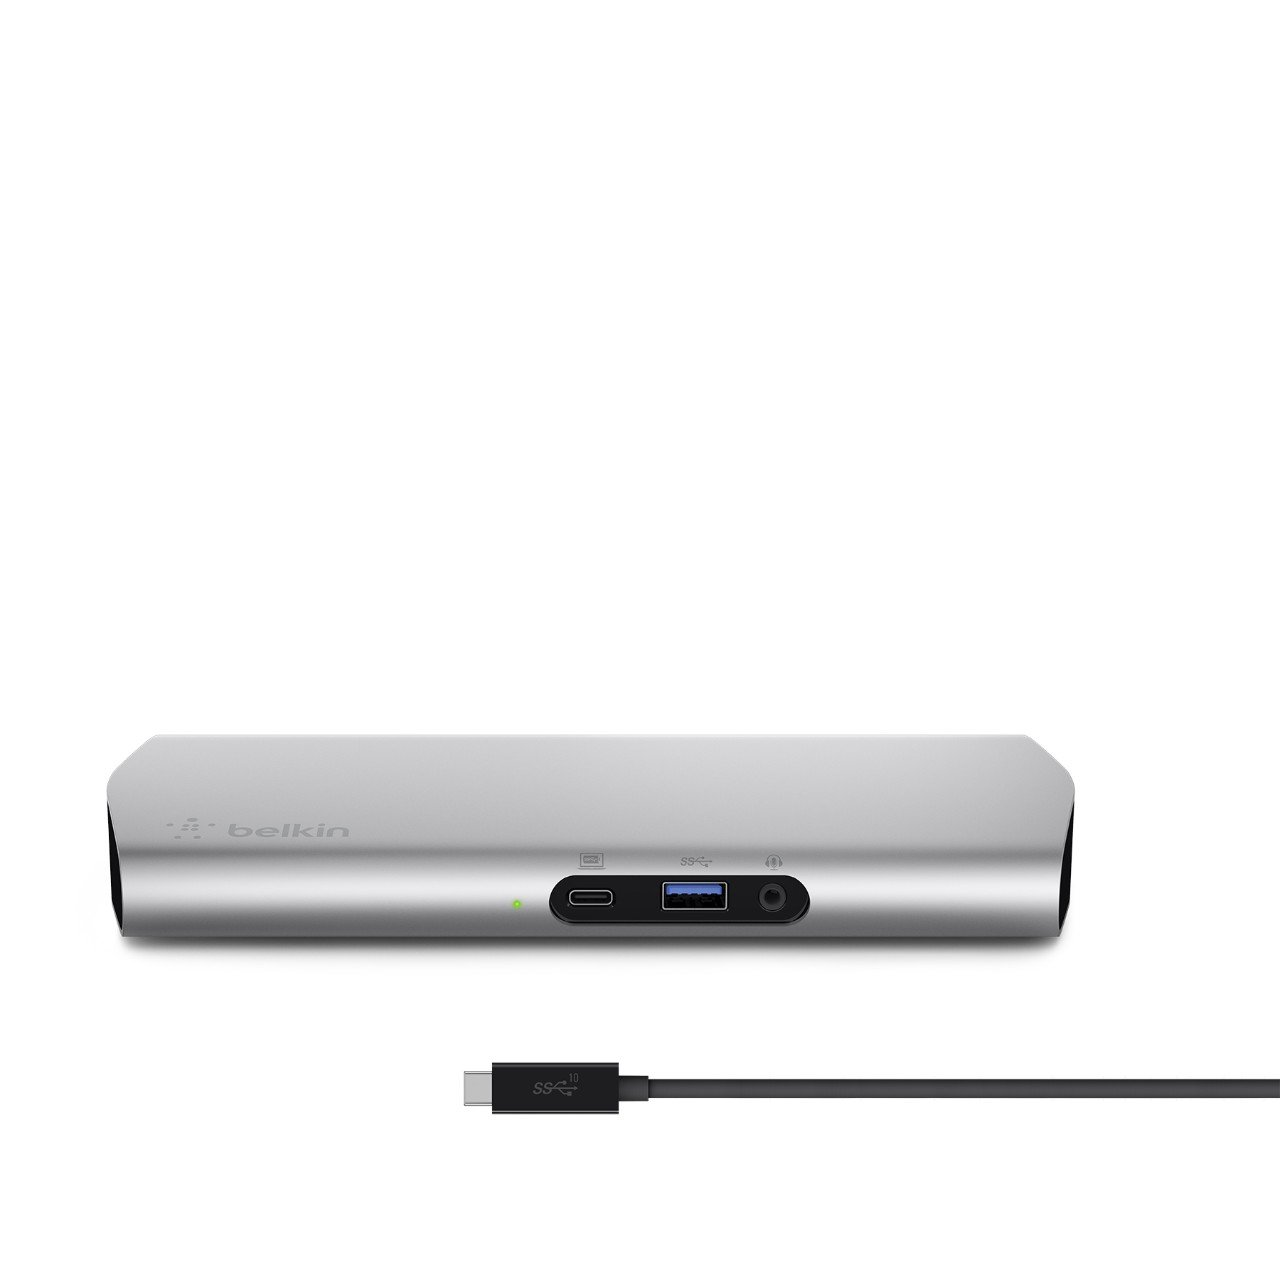 Belkin USB-C 3.1 Express Dock HD with 1-Meter/3.3 Foot USB-C Cable: Compatible with MacBook (Early 2015 or Later,) MacBook Pro 13'' (2016 or Later,) MacBook Pro 13'' & 15'' w/Touch Bar (2016 or Later)